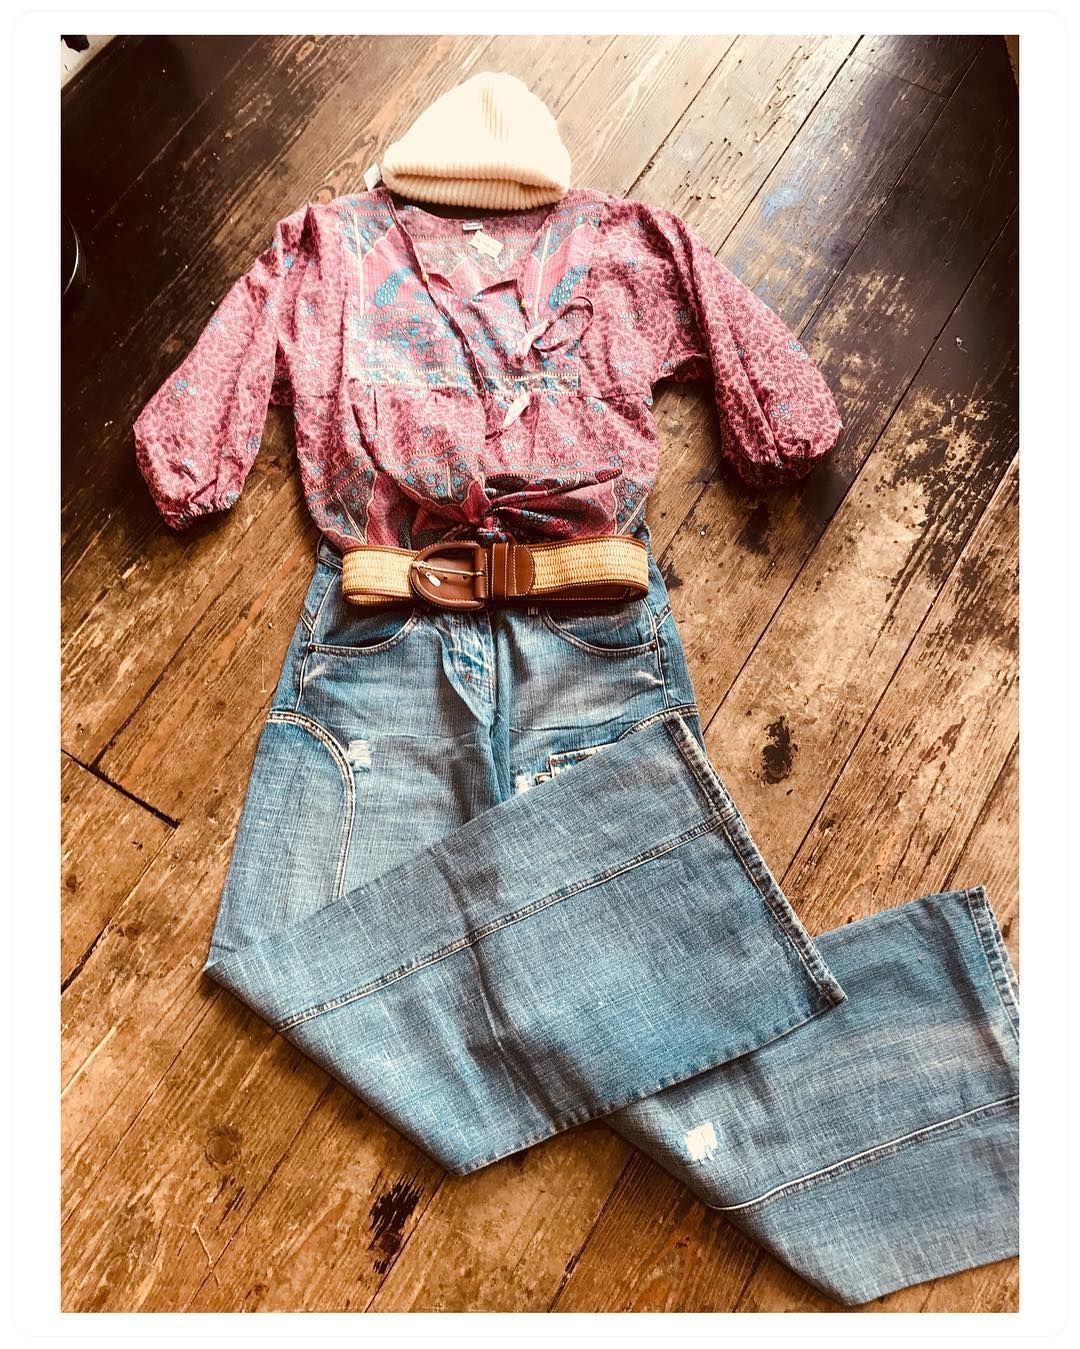 Pink Peacock Top Clothes Vintage Outfits Bohemian Clothes